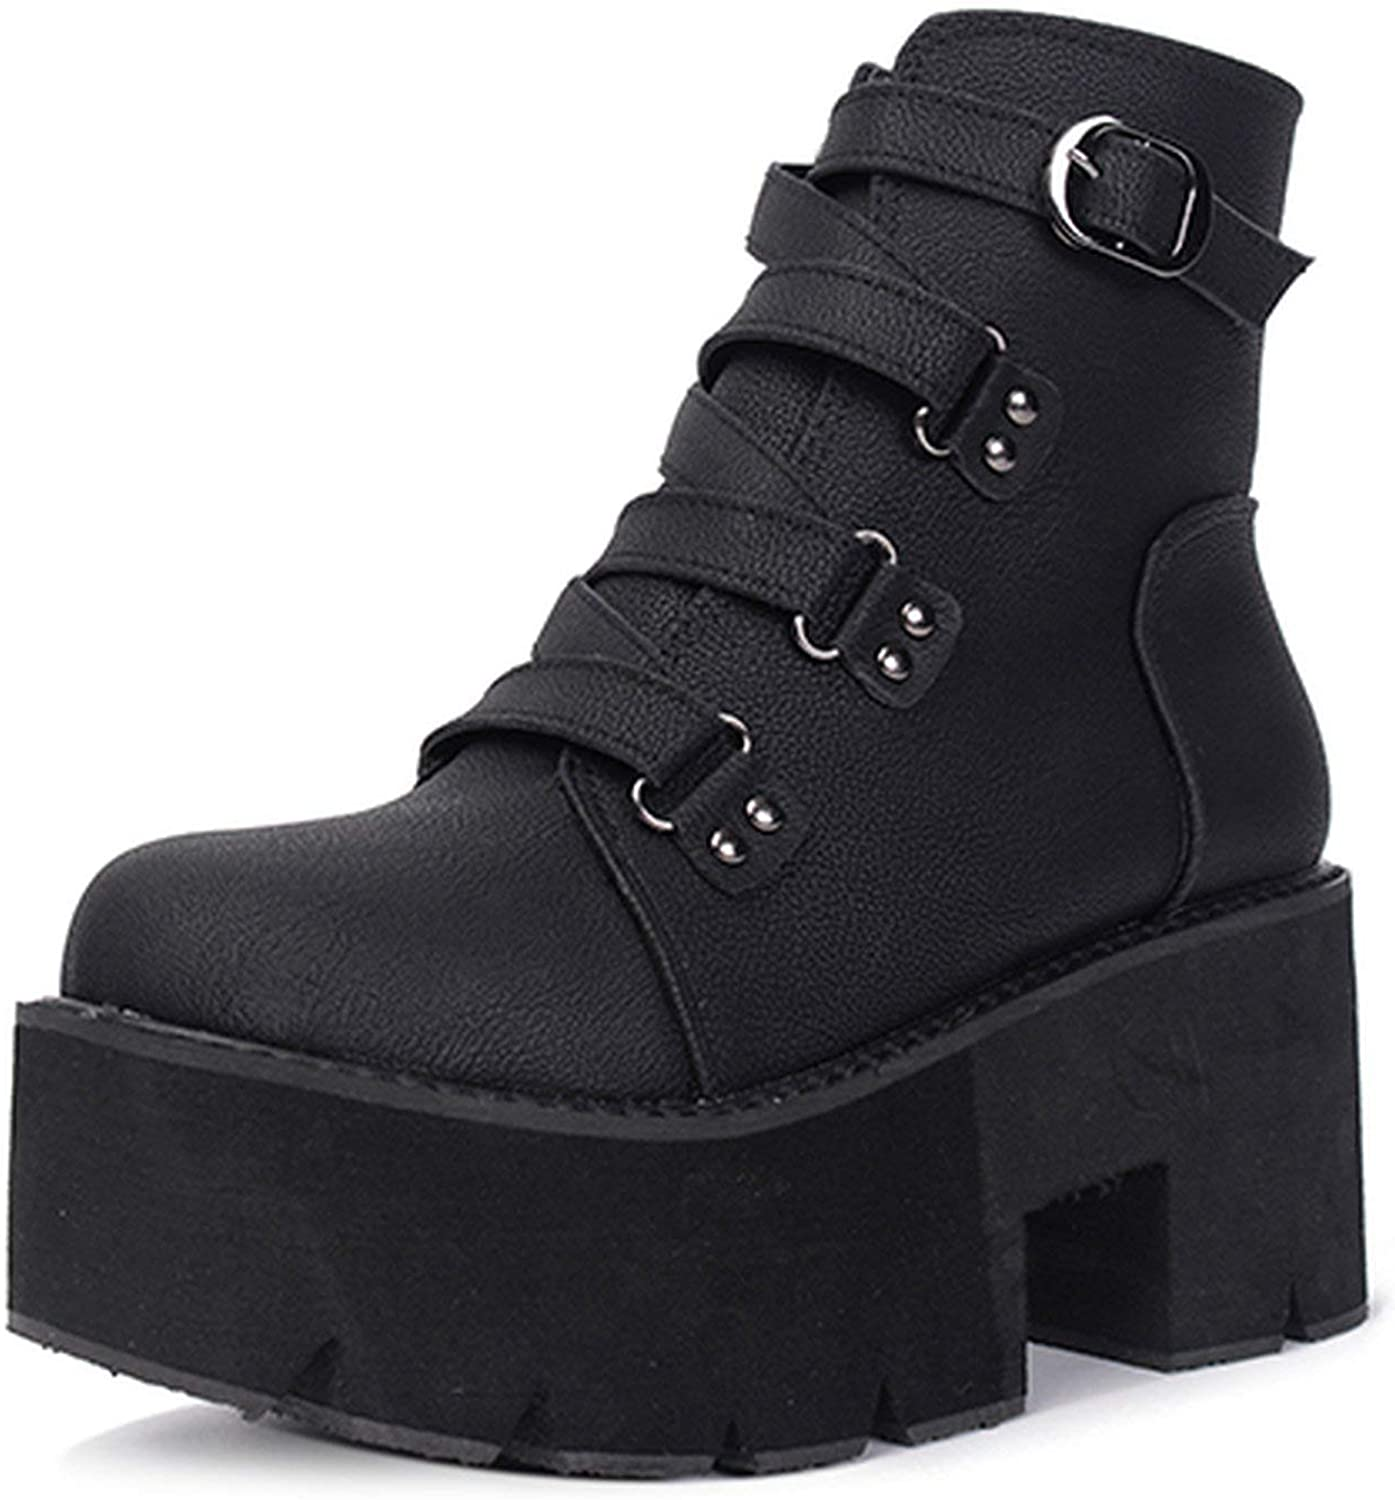 Spring Autumn Ankle Boots Women Platform Boots Rubber Sole Buckle Black Leather PU High Heels shoes